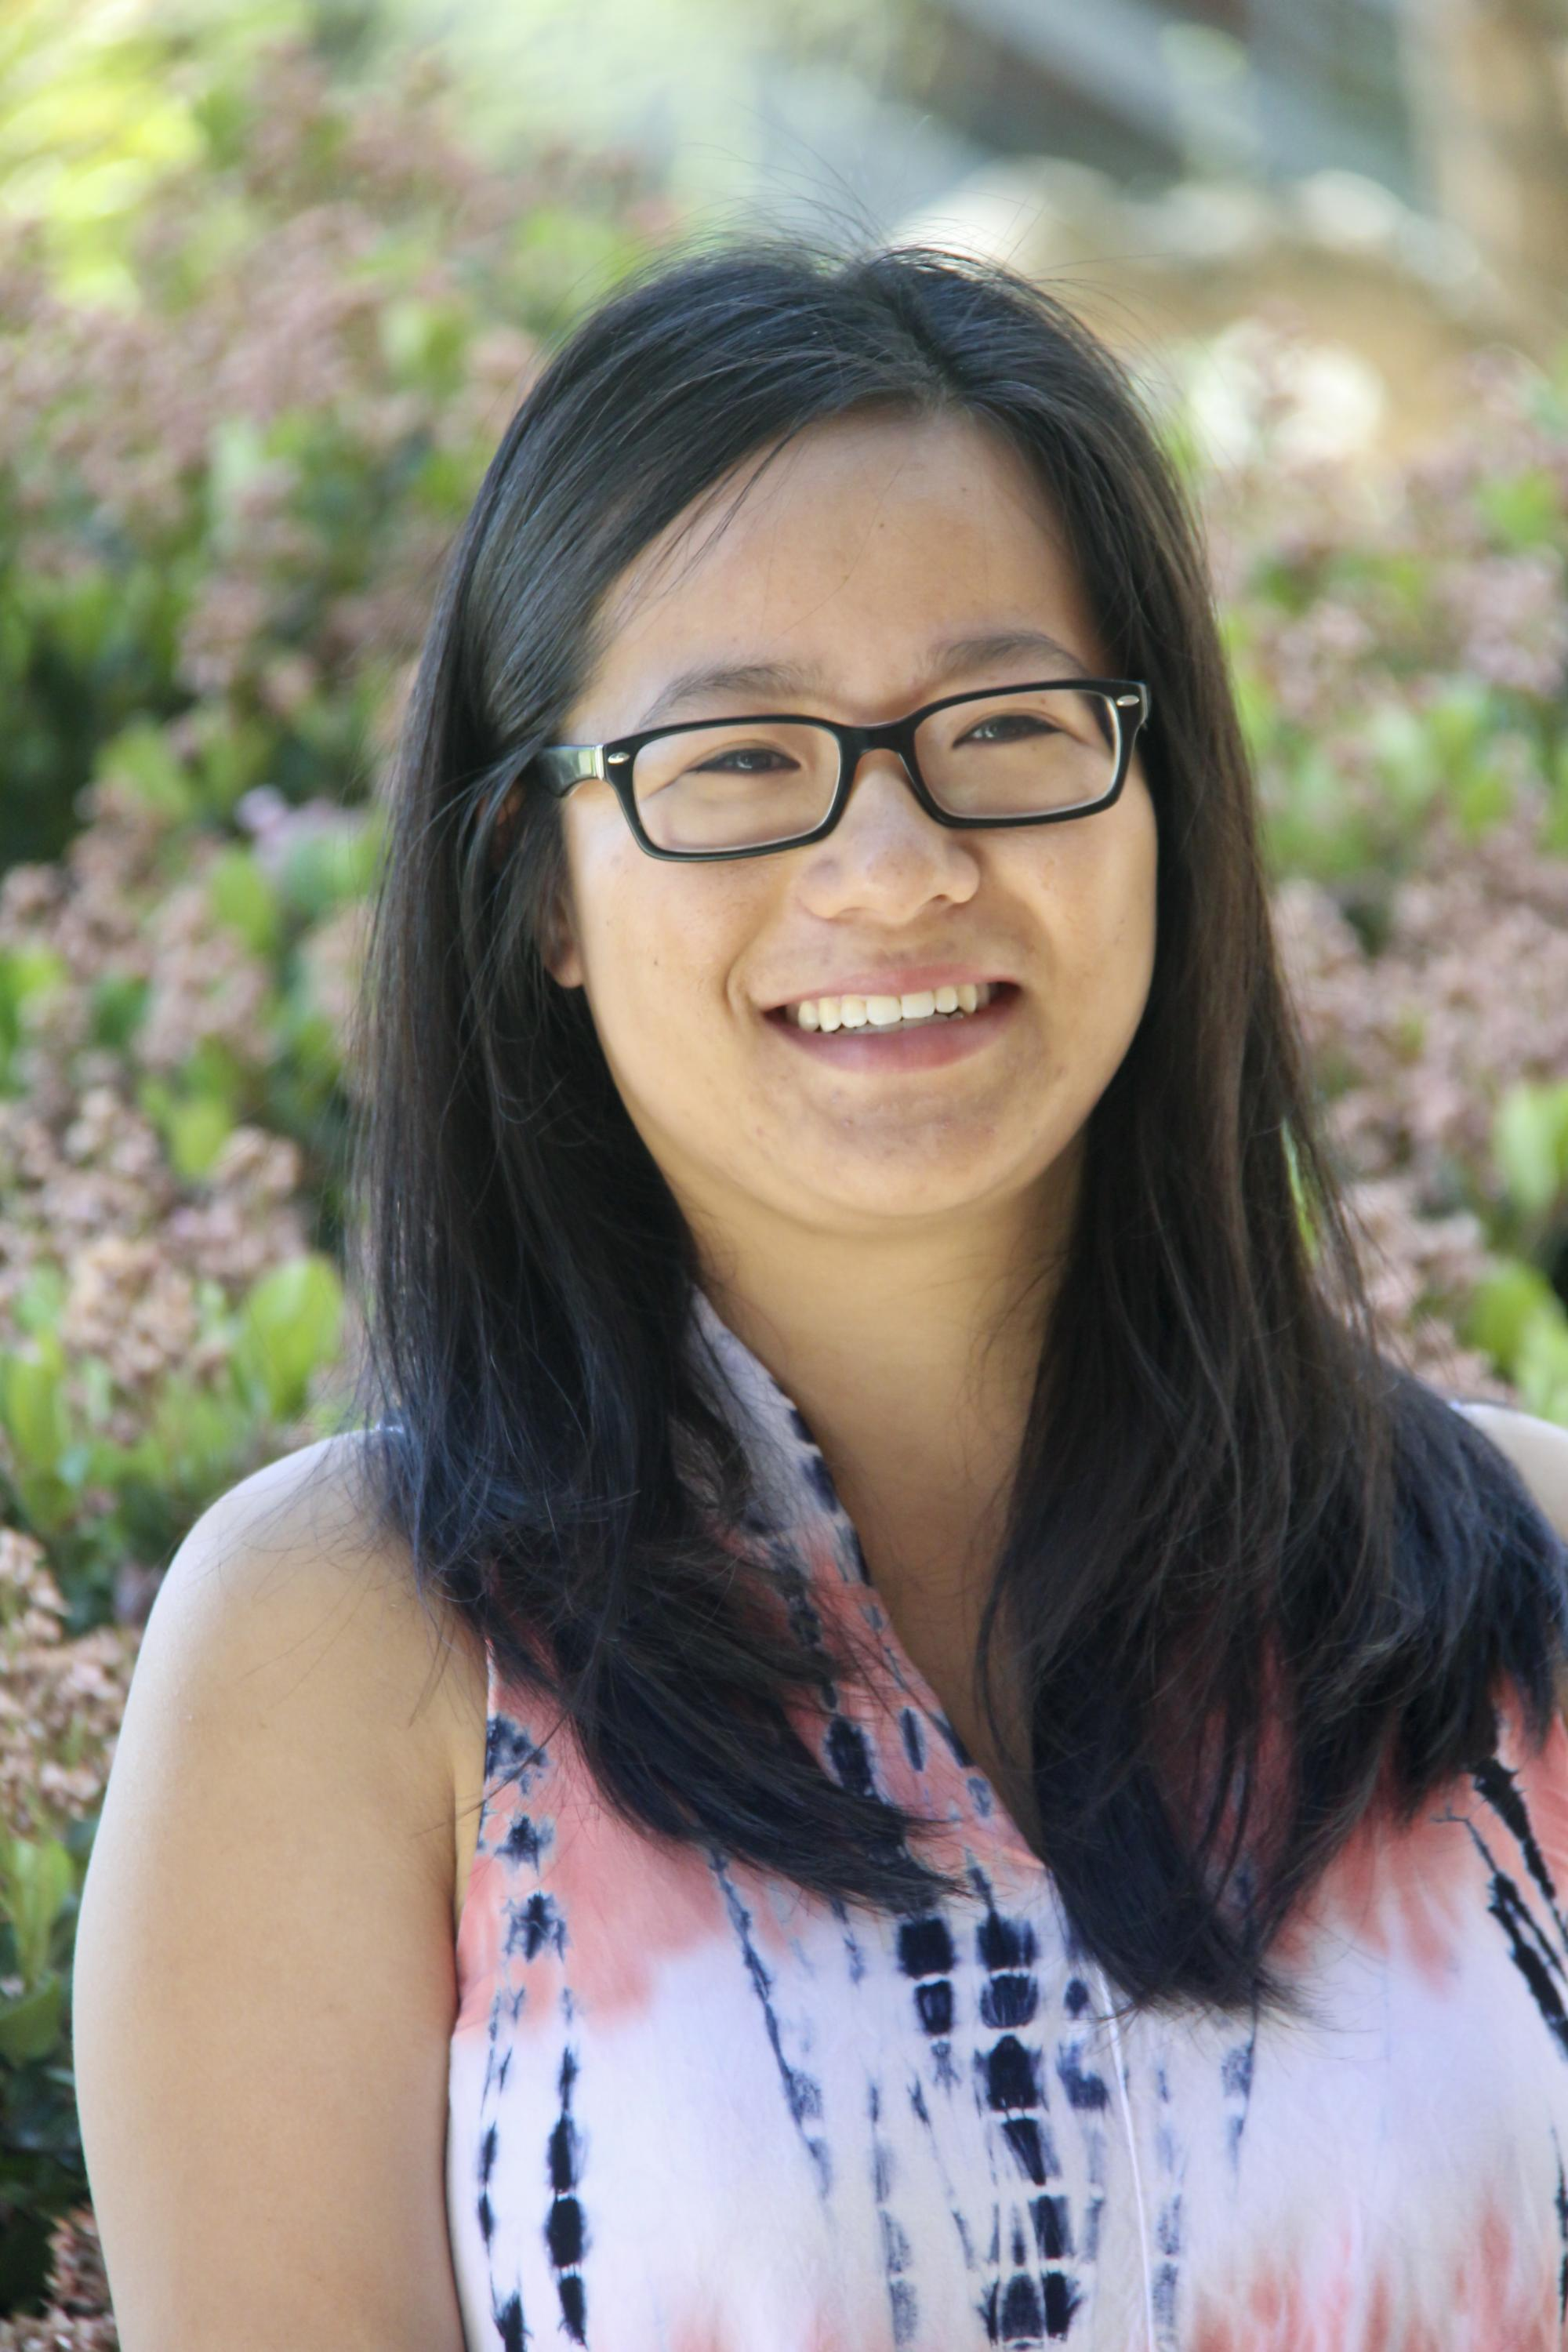 """""""In mining engineering, I have found my ideal career,"""" said Jing Liu, who has been named the Department of Mining and Geological Engineering's Outstanding Senior."""